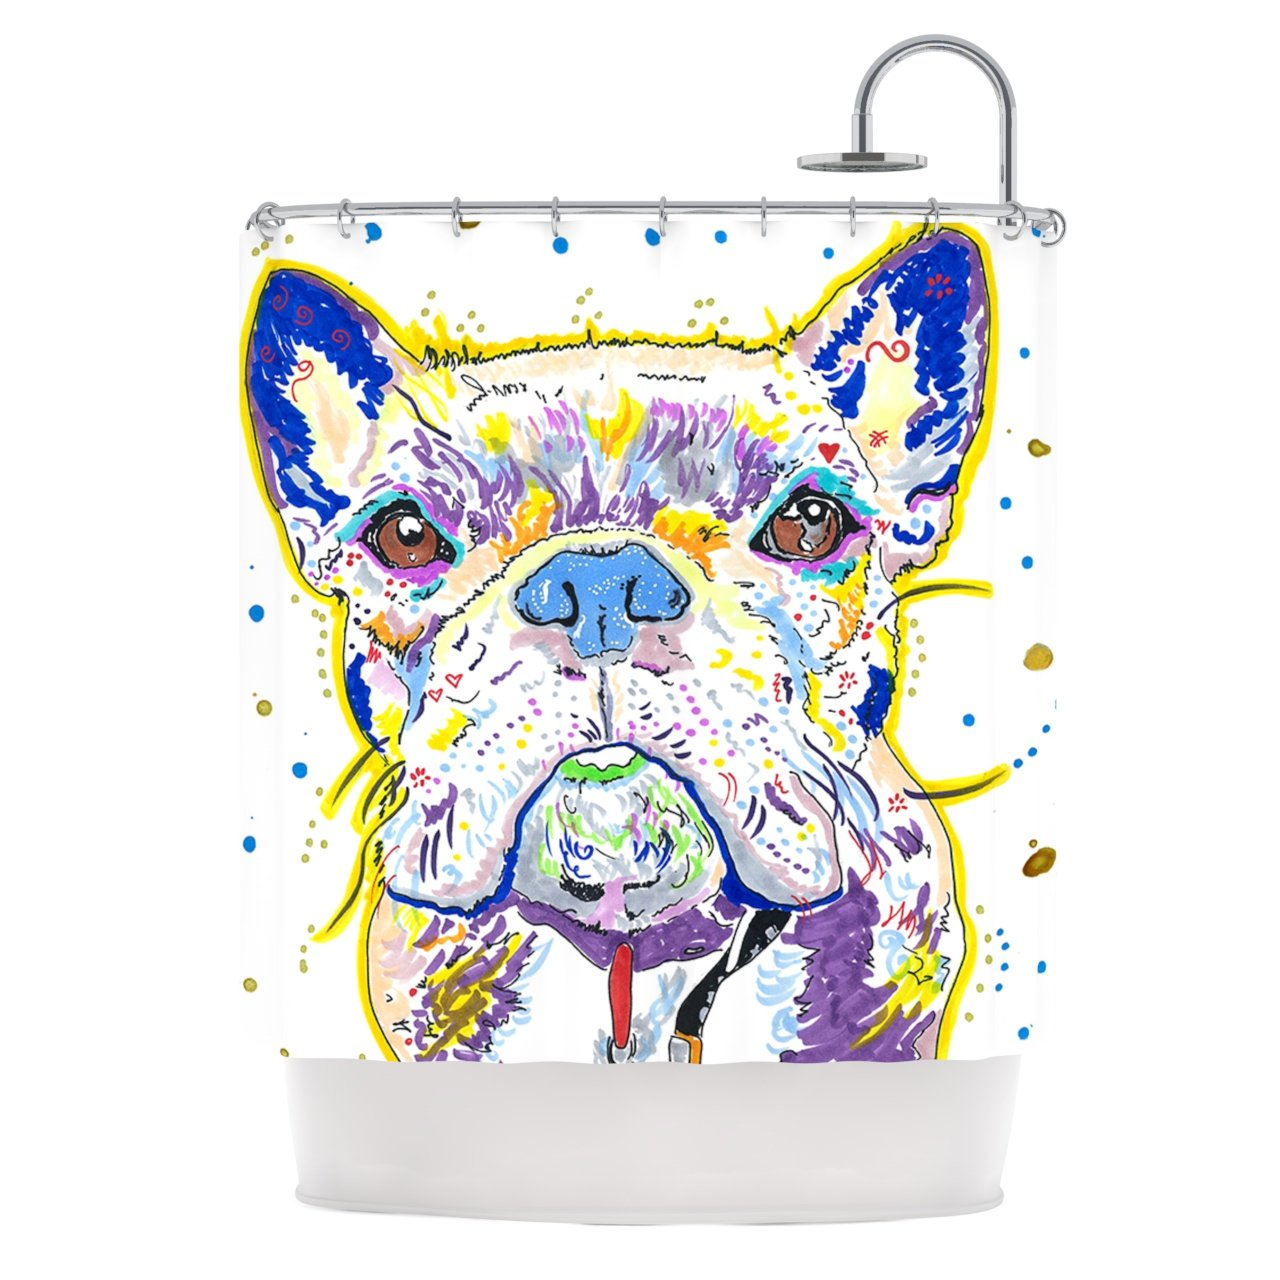 The Coolest Shower Curtains Ever